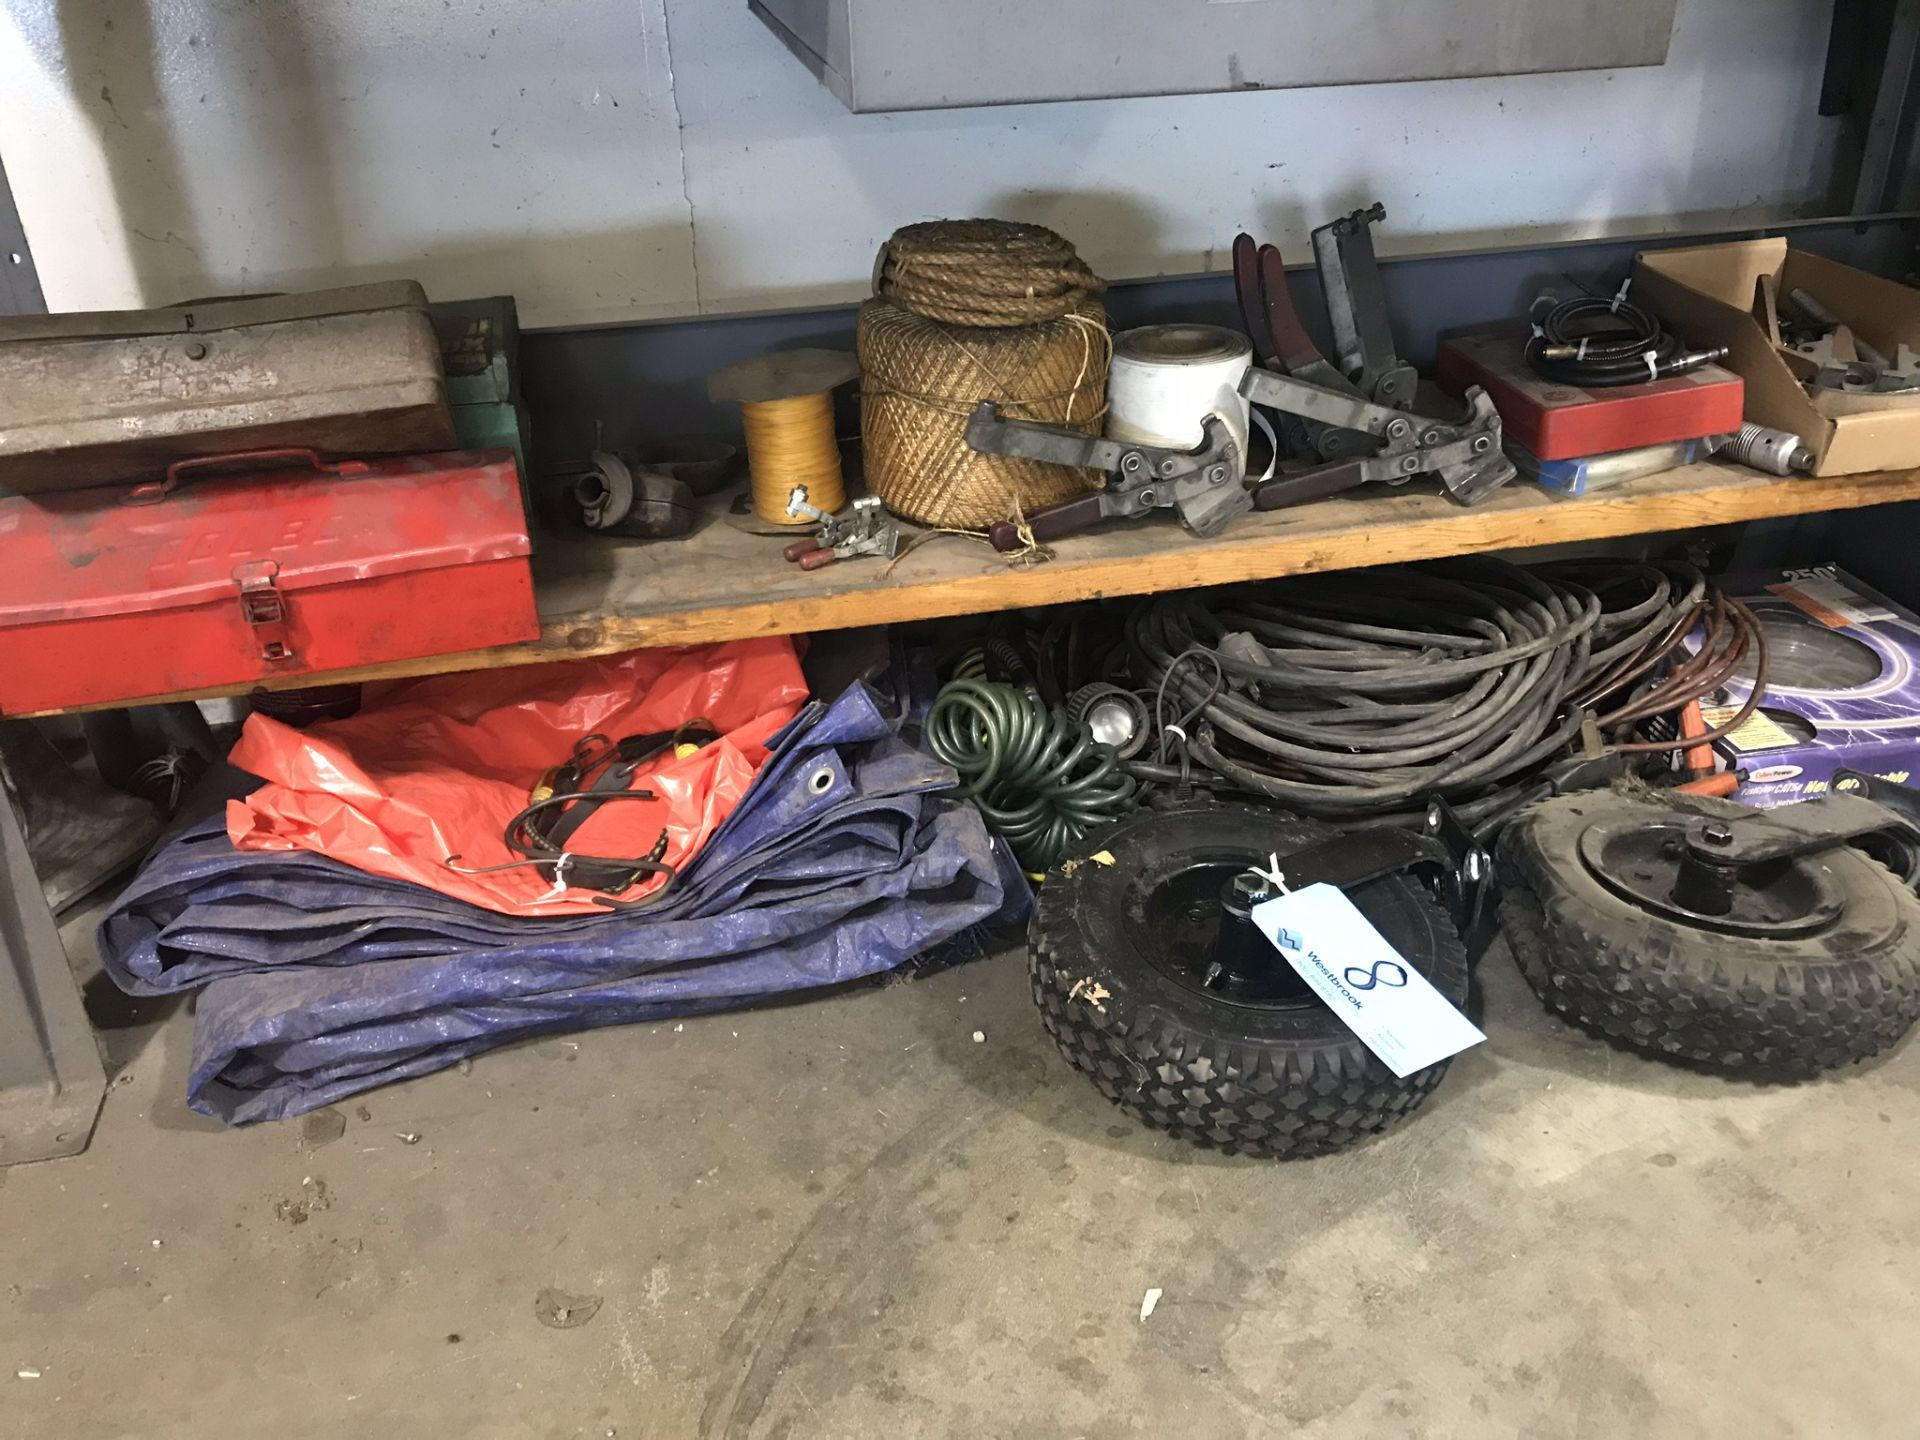 Lot 8 - Lot-Tool Boxes, Rope, Electrical Cords, Tarps, Wheels, Fan, Light,